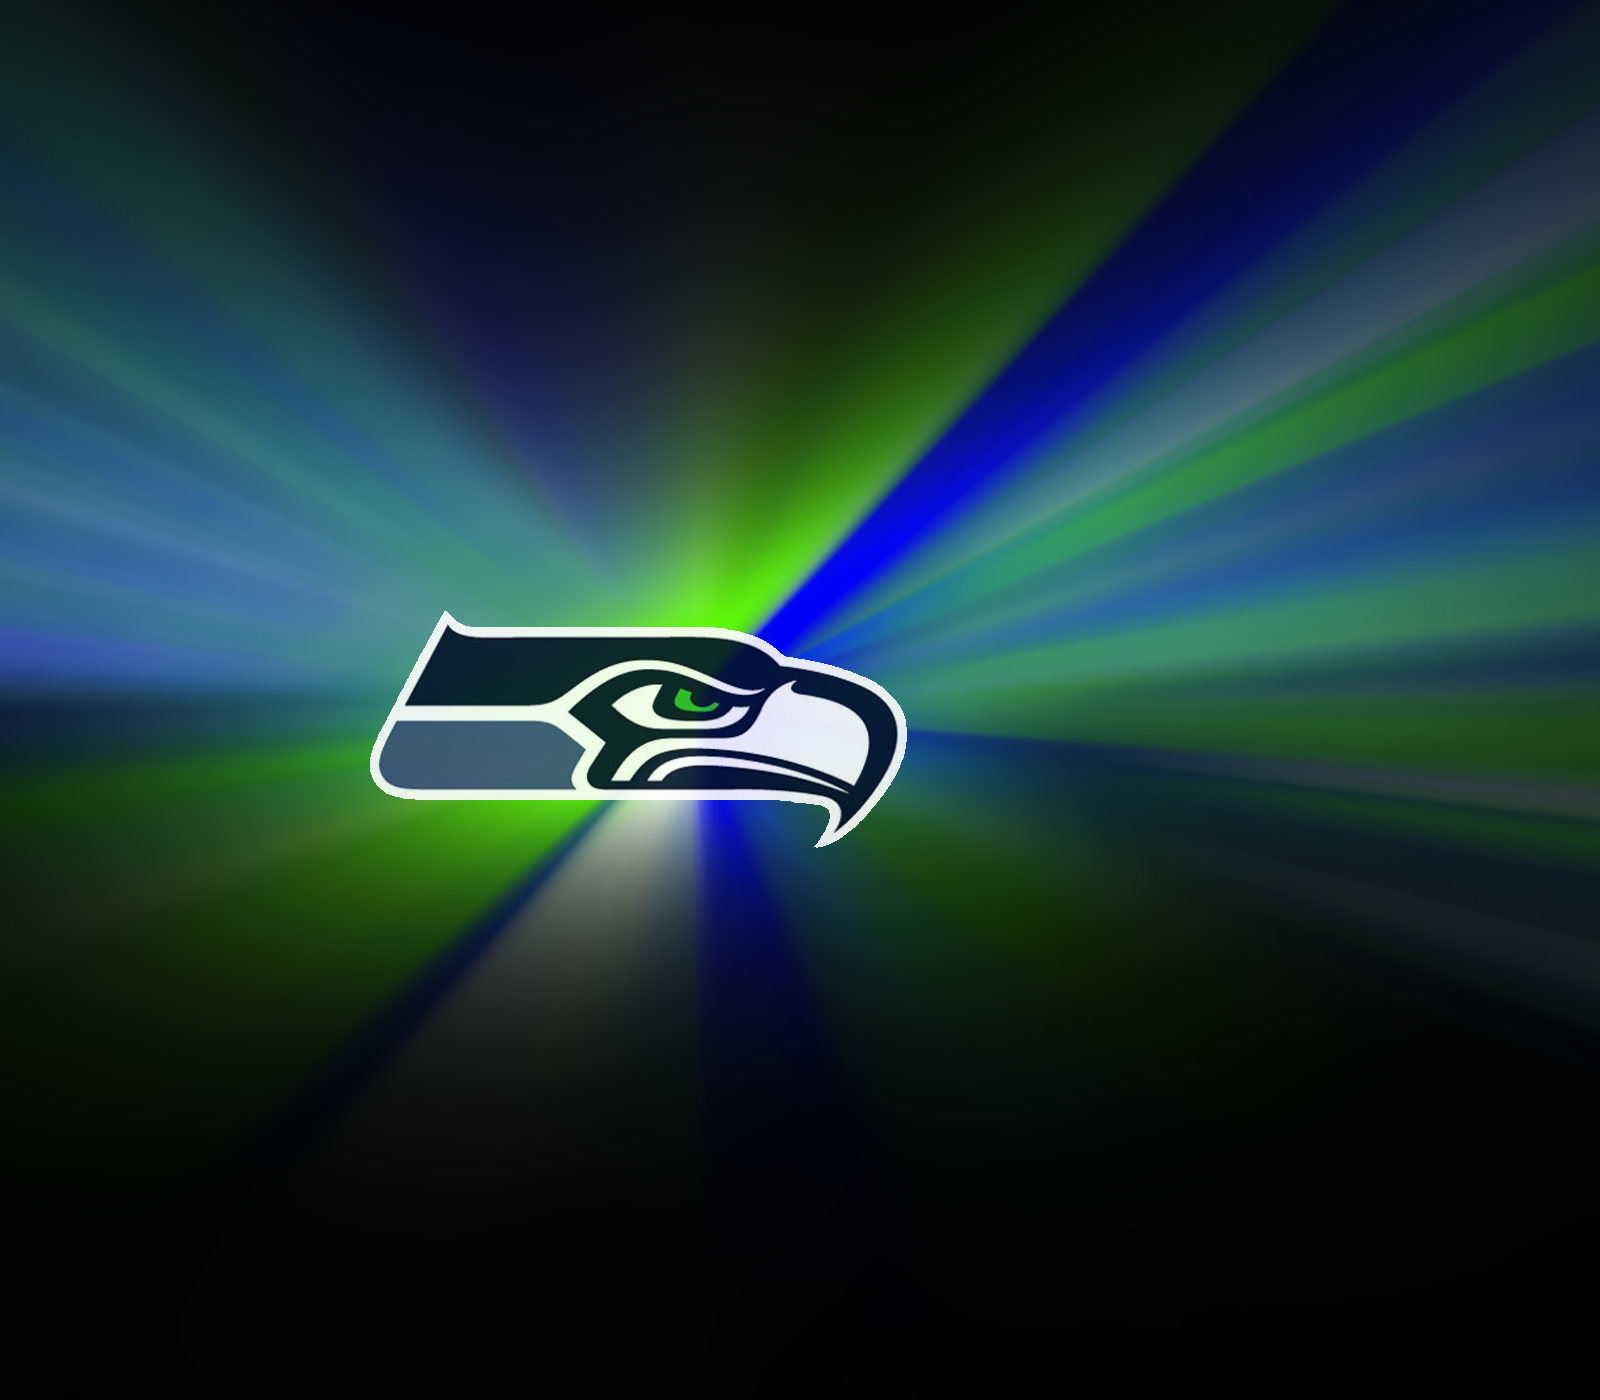 Seahawks Wallpaper 2013 Seahawks Wallpapers For Dekstop